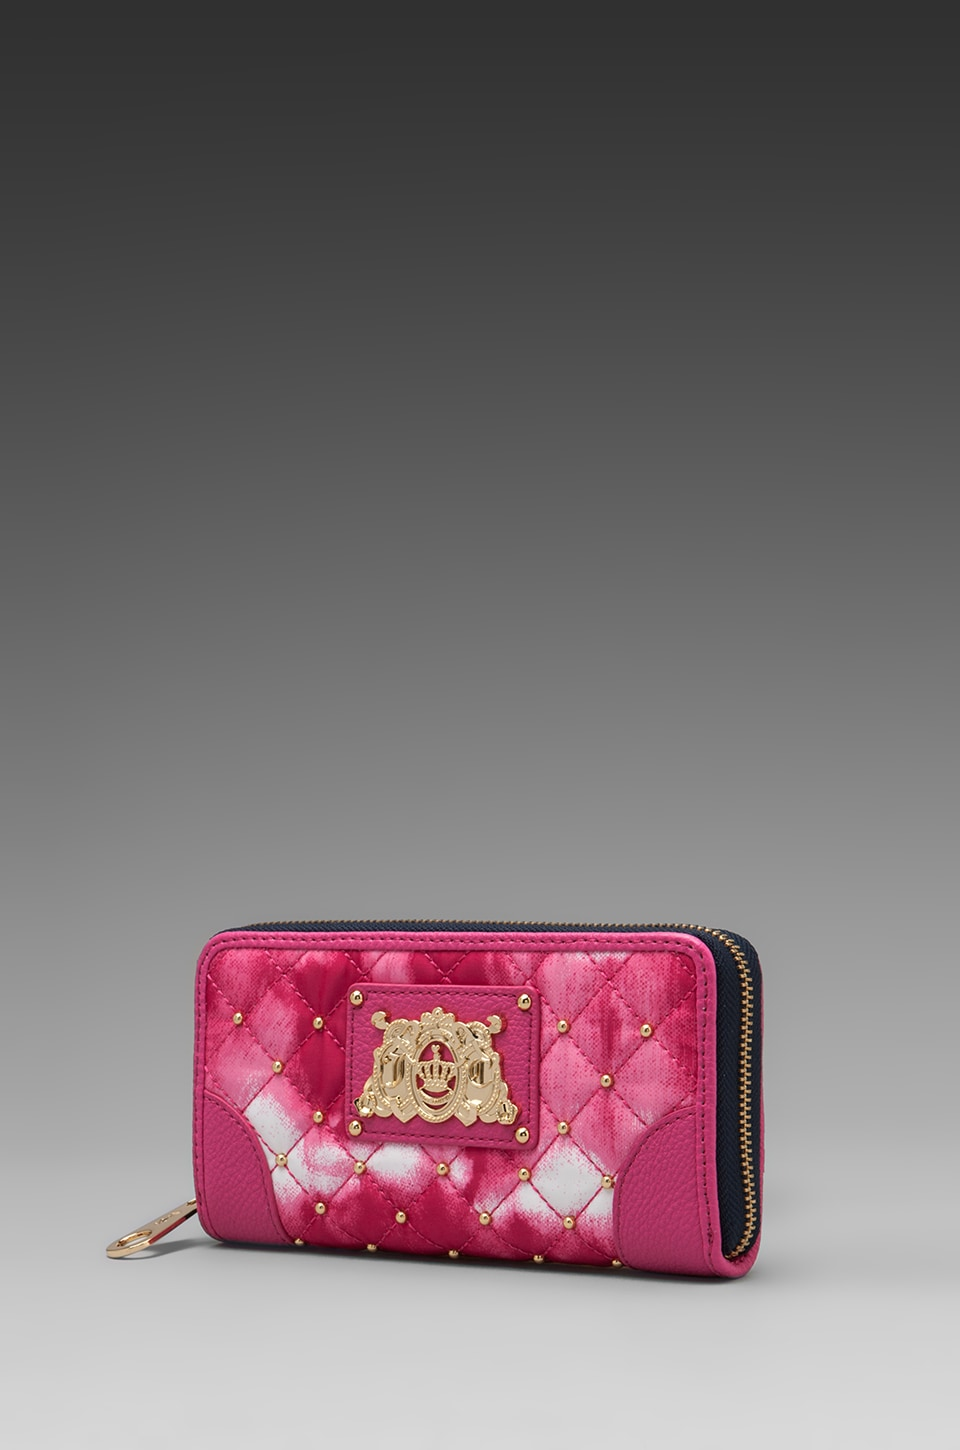 Juicy Couture Nylon Zip Wallet in Pink Tie Dye